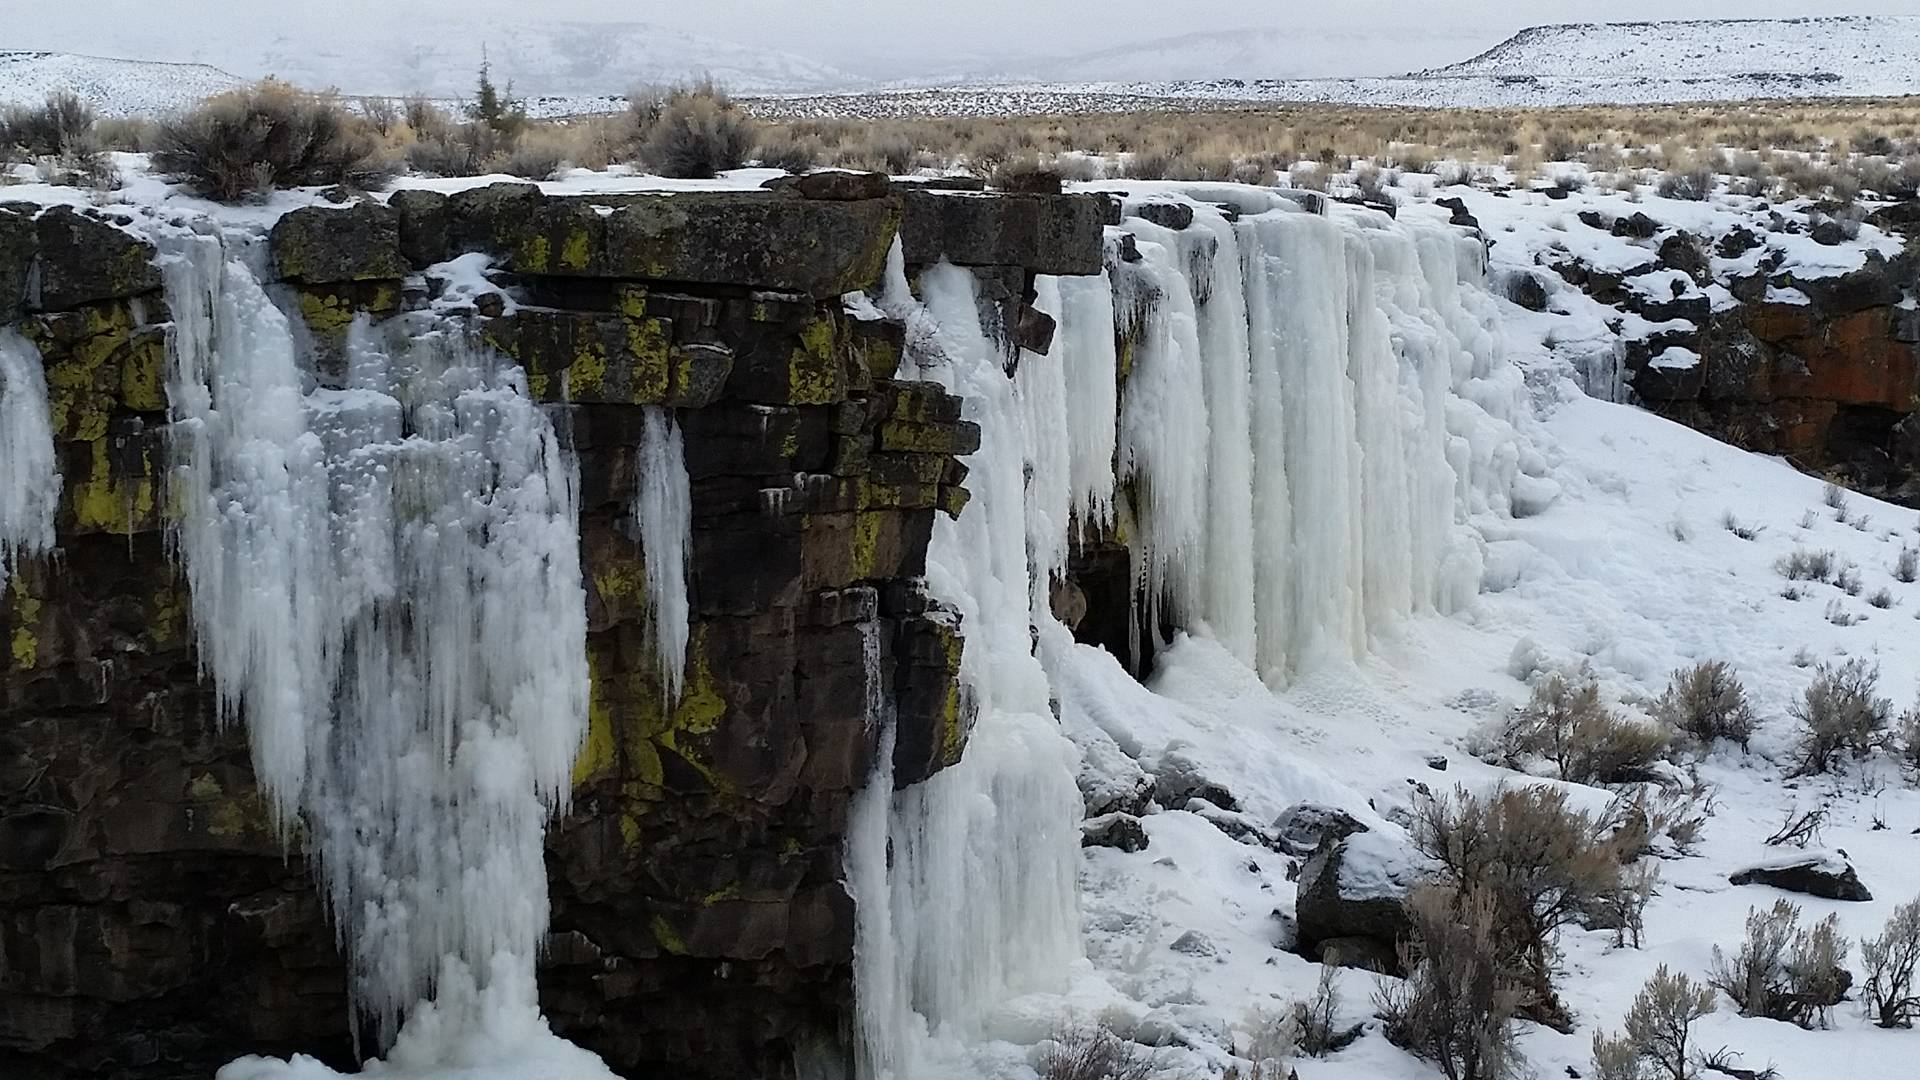 Giant Icicles East of Bend Oregon